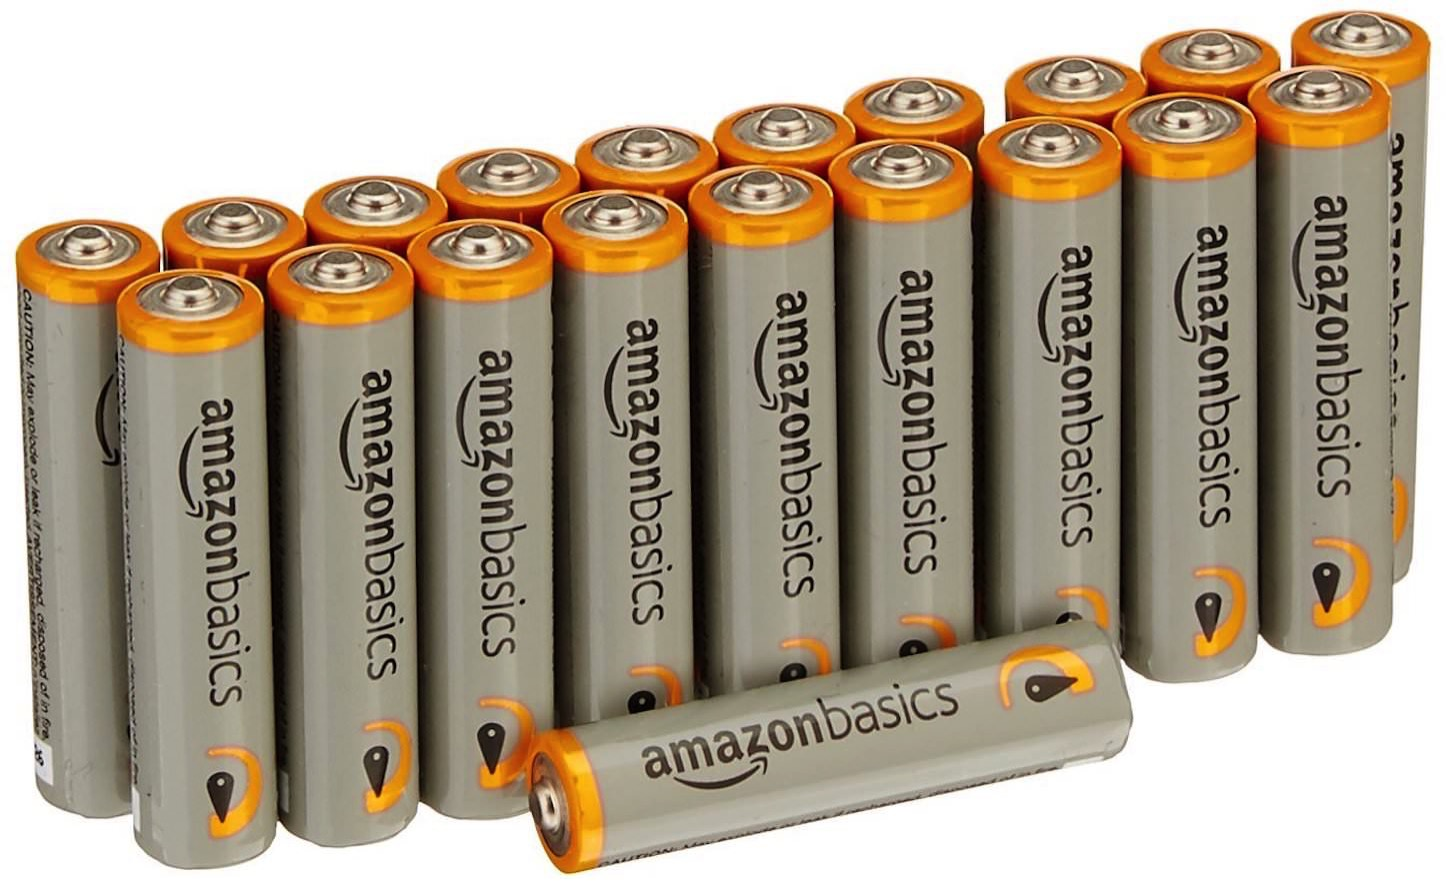 amazon-basics-batteries.jpg